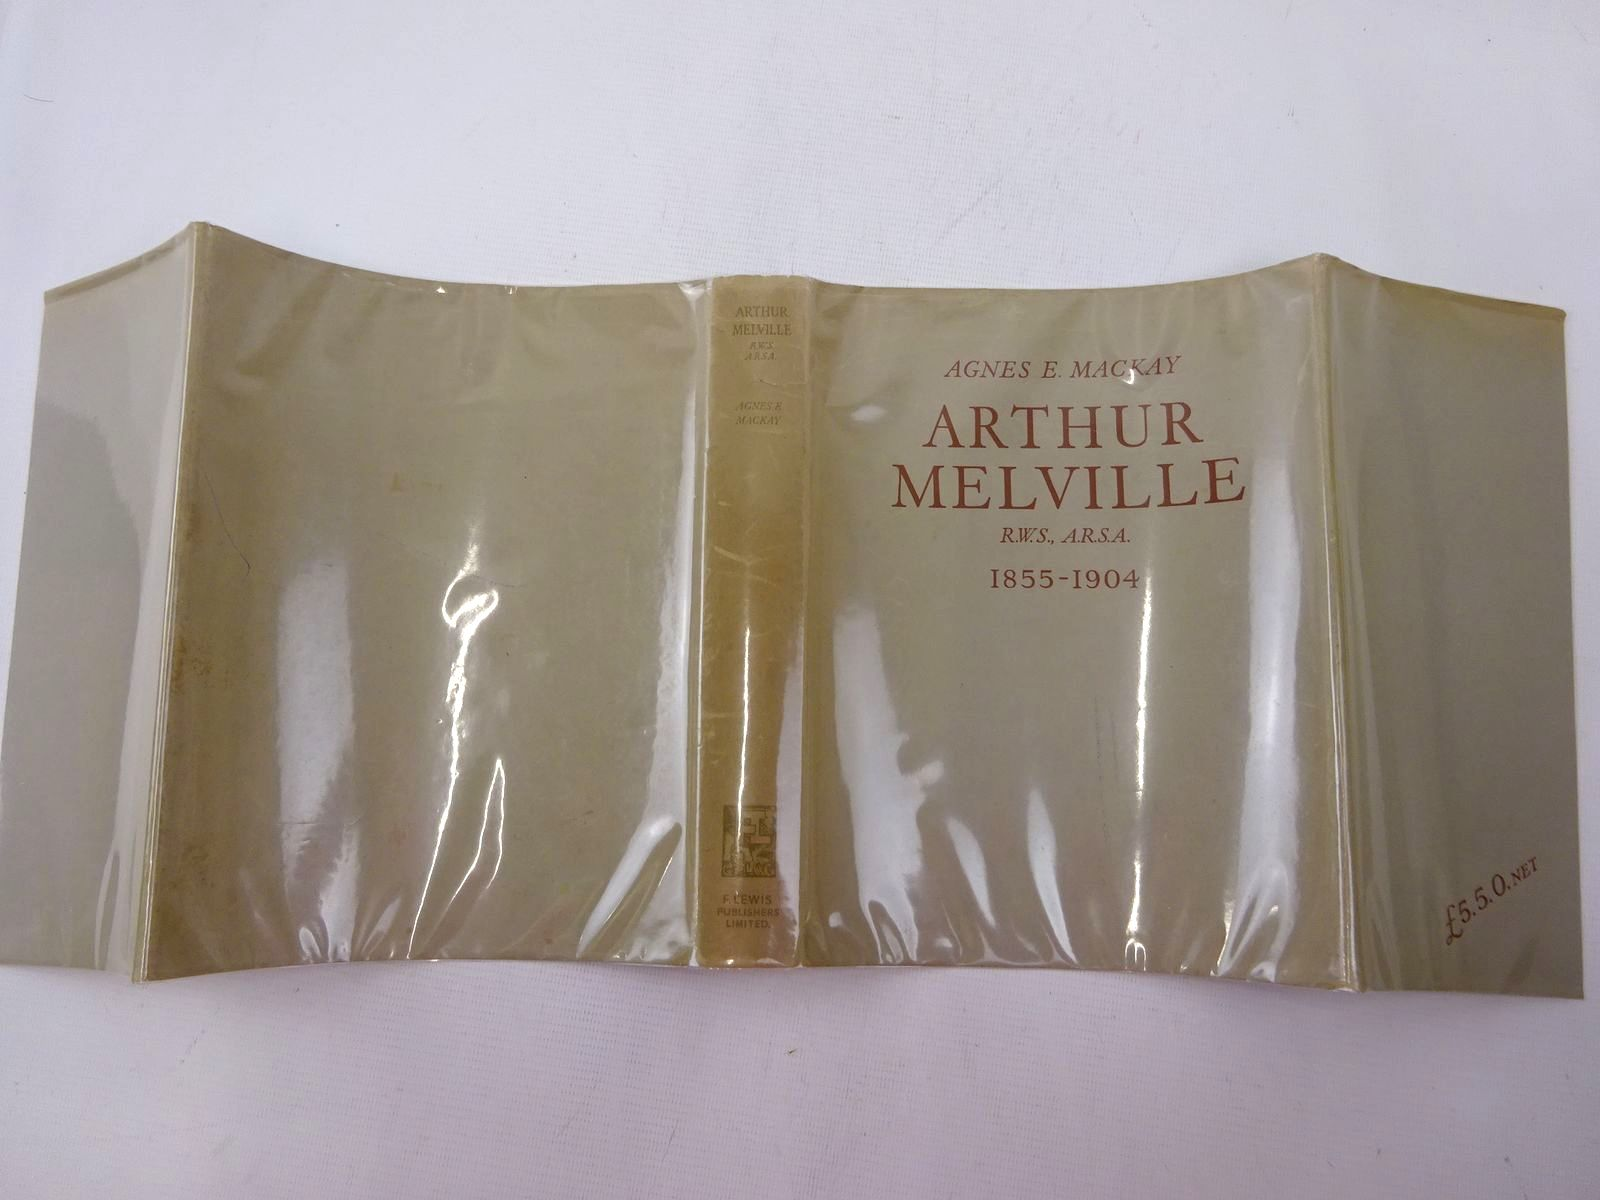 Photo of ARTHUR MELVILLE SCOTTISH IMPRESSIONIST (1855-1904) written by Mackay, Agnes Ethel illustrated by Melville, Arthur published by F. Lewis Publishers Limited (STOCK CODE: 2129104)  for sale by Stella & Rose's Books